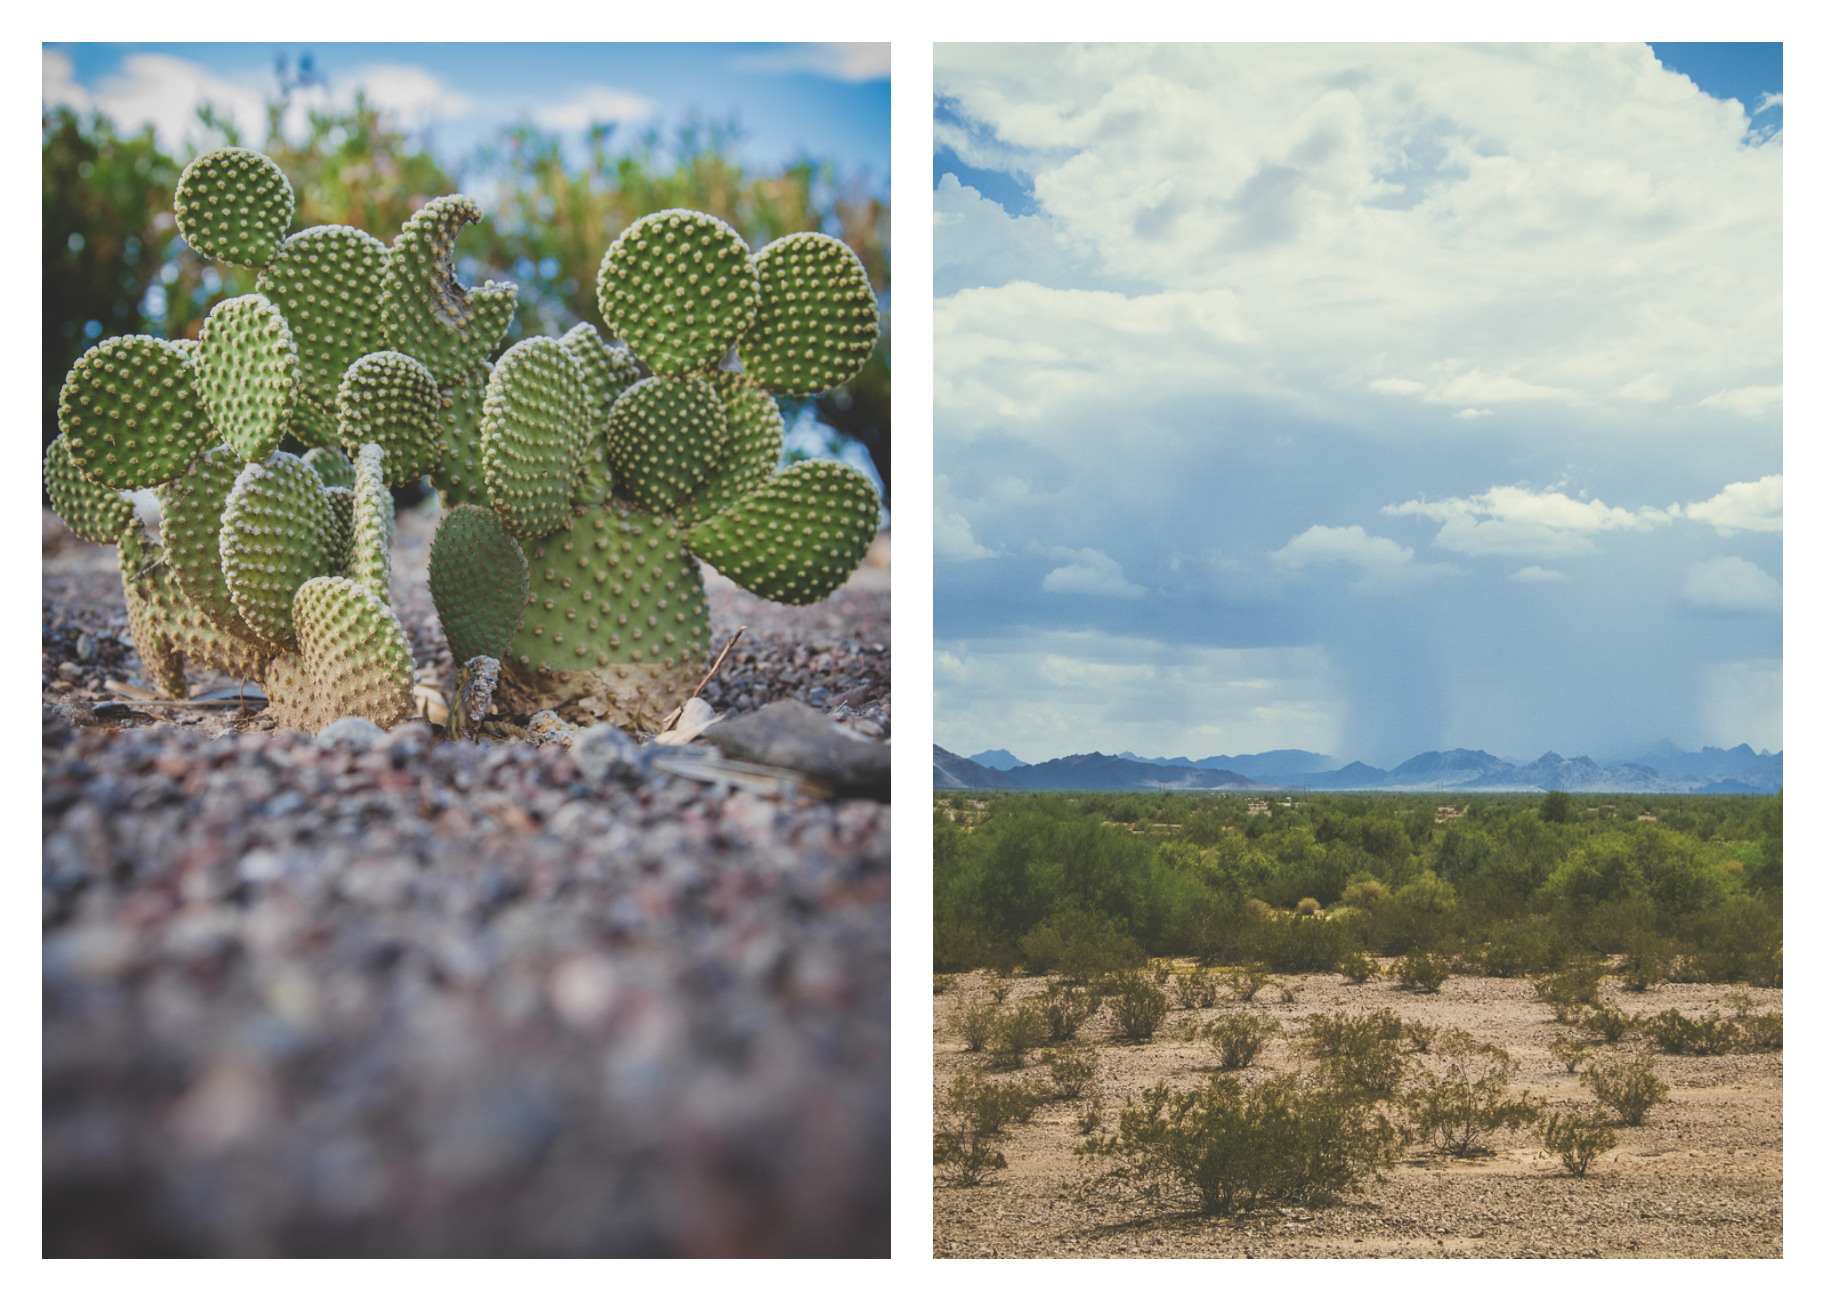 Left: Shot at f/2.8 for a shallow depth of field to get just the cactus in focus / Right: Shot at f/16 to get the whole landscape in focus